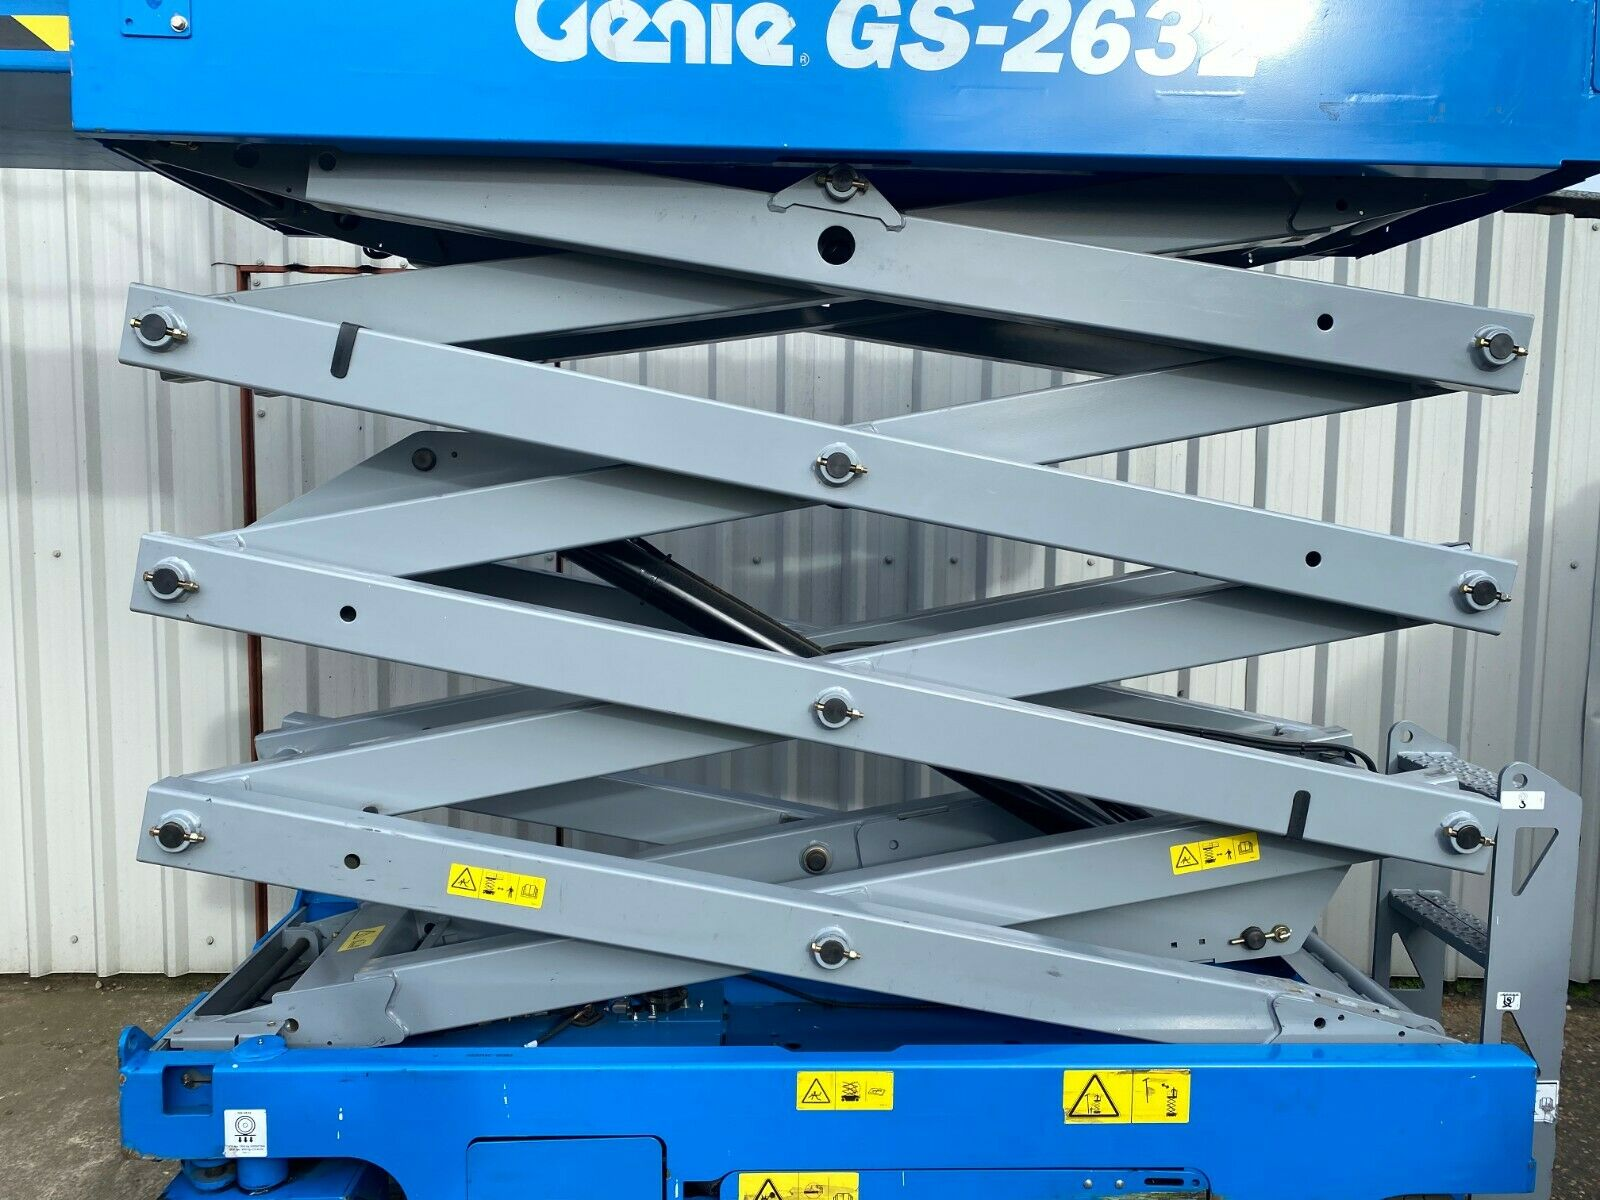 GENIE GS-2632 ACCESS PLATFORM SCISSOR LIFT, YEAR 2014 *PLUS VAT* - Image 3 of 9